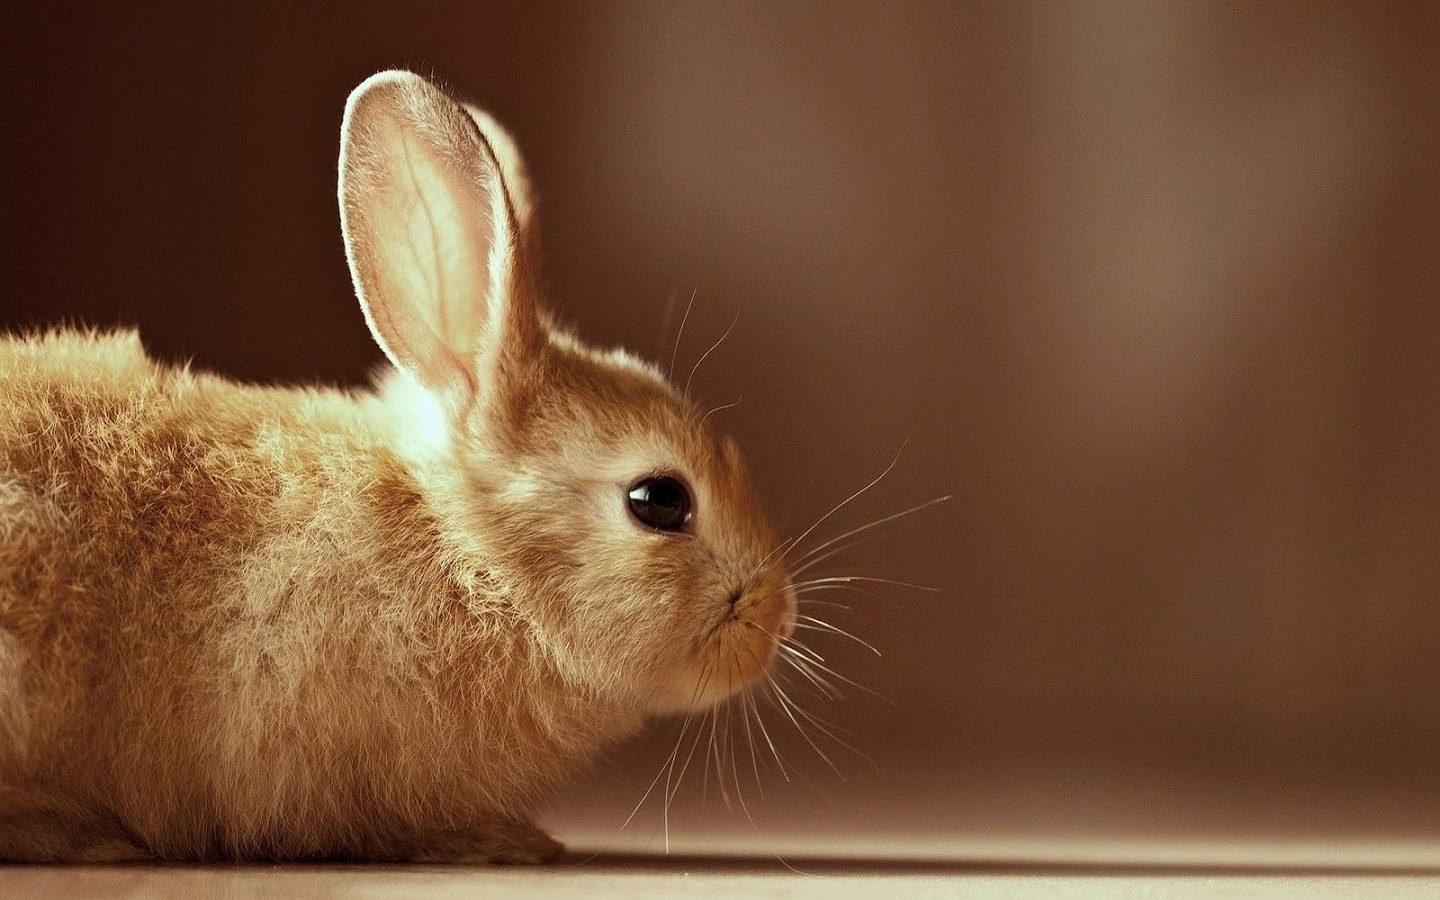 Rabbit Wallpapers - Android Apps on Google Play